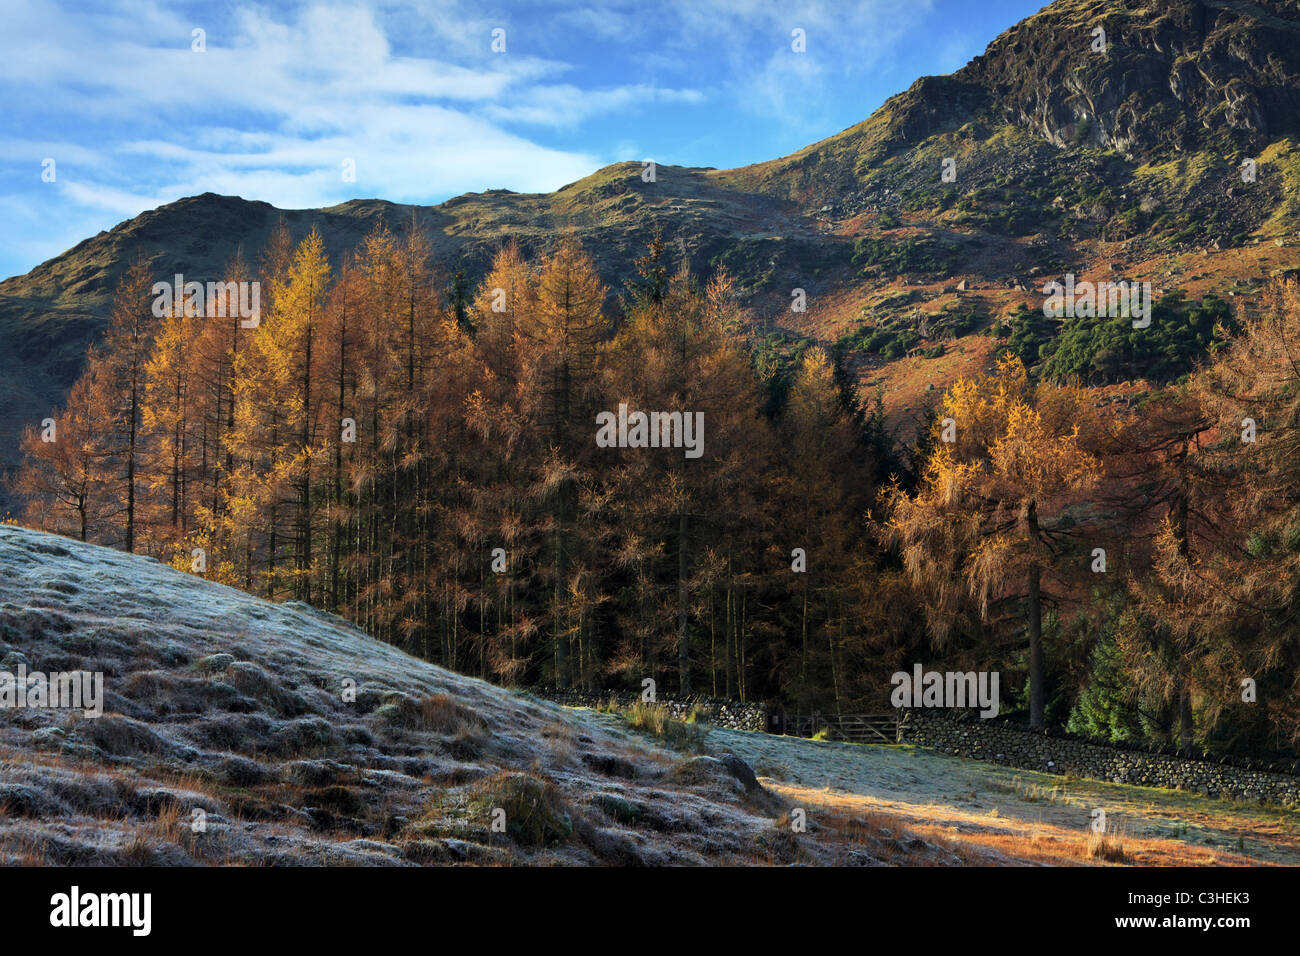 Frosty autumn morning along the shores of Blea Tarn showing brightly colored larches below Blake Rigg Stock Photo